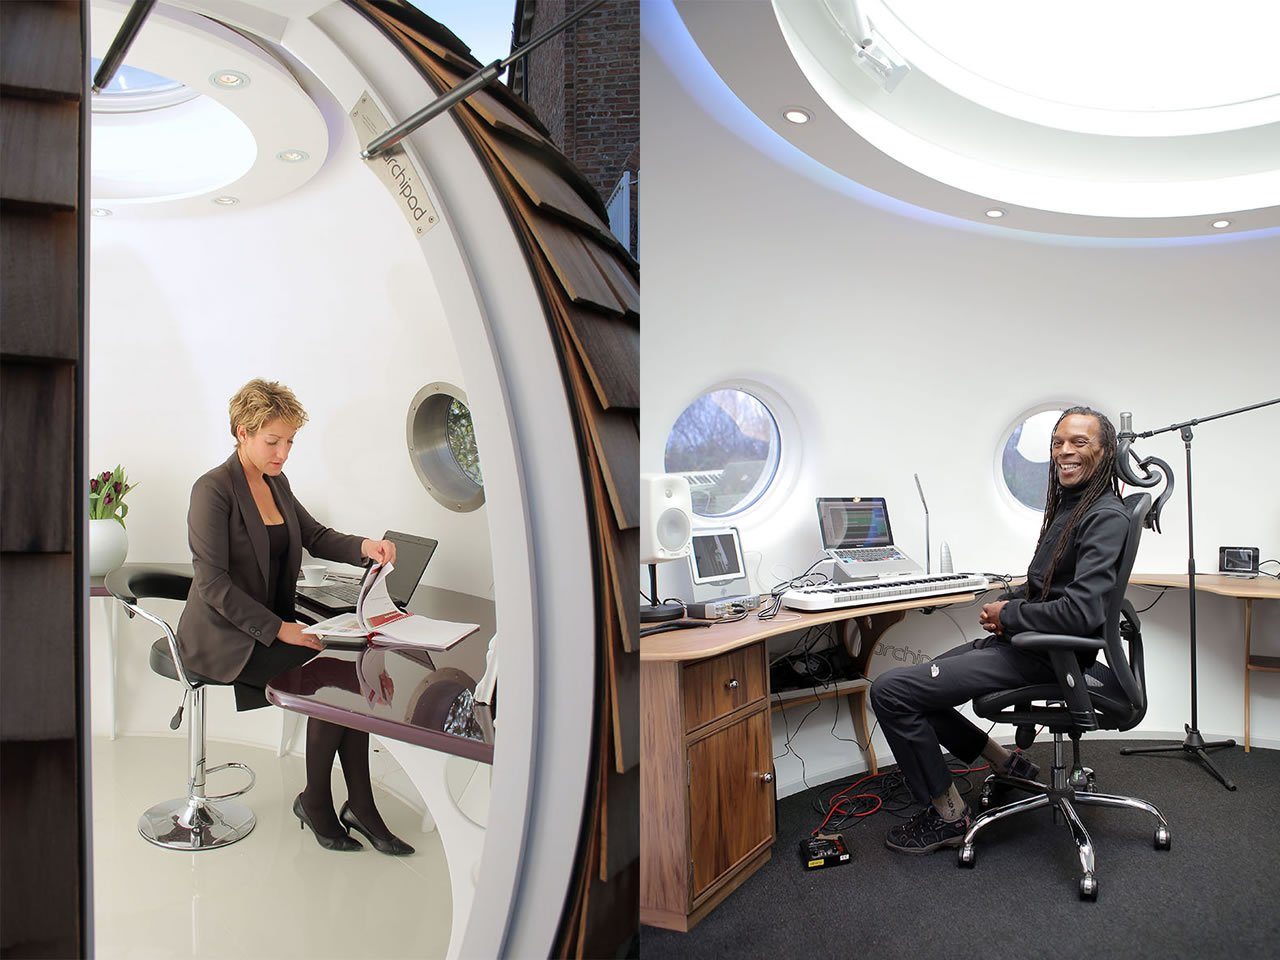 meet podzook the personalized pod for work play meditation or